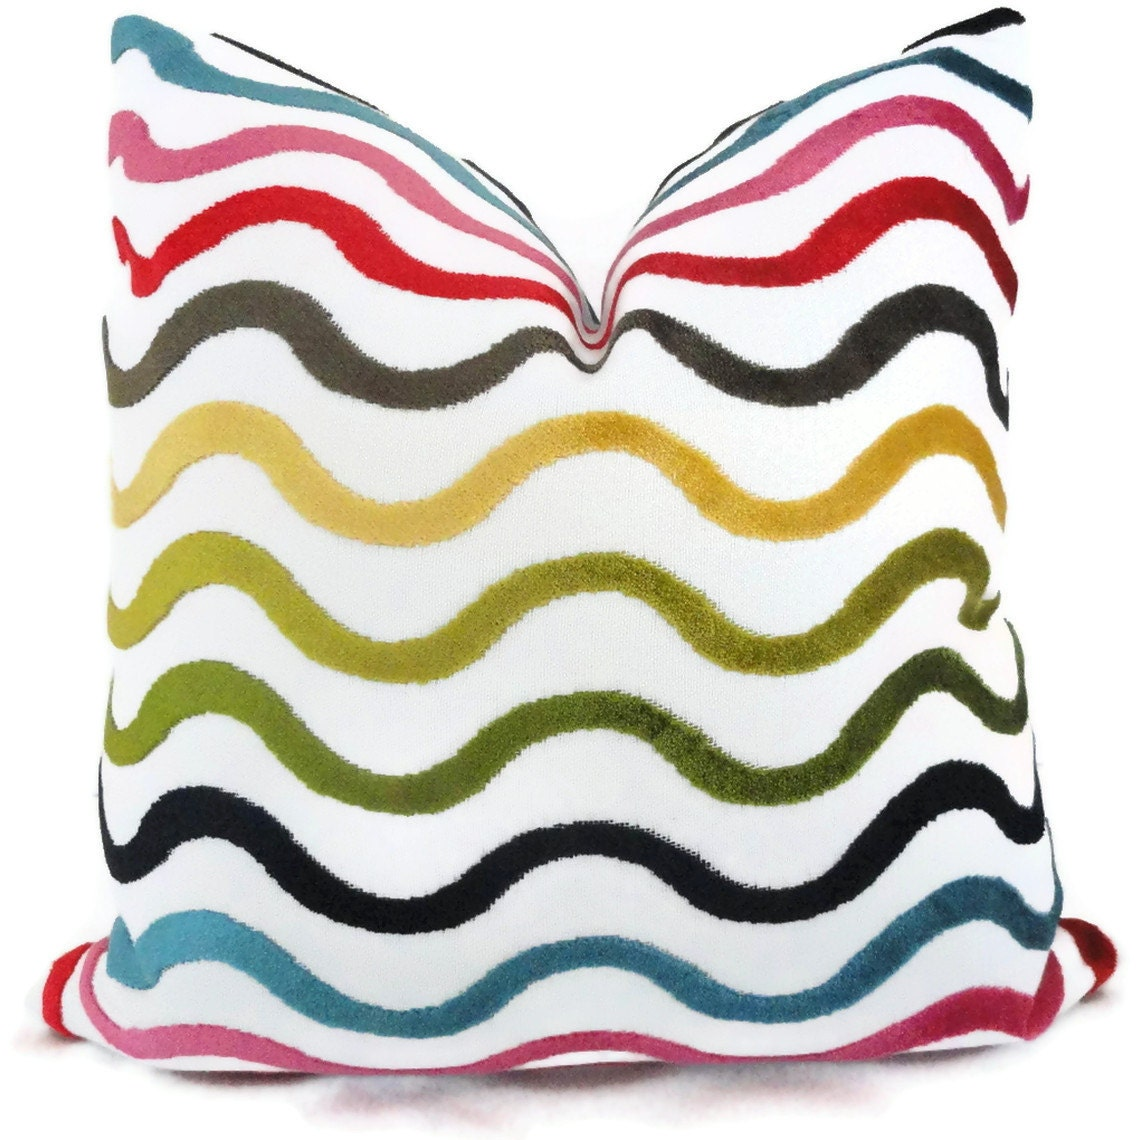 Jonathan Adler Multicolor Wavy Lines Decorative Pillow Cover, Accent Pillow, Throw Pillow, Pillow Cover